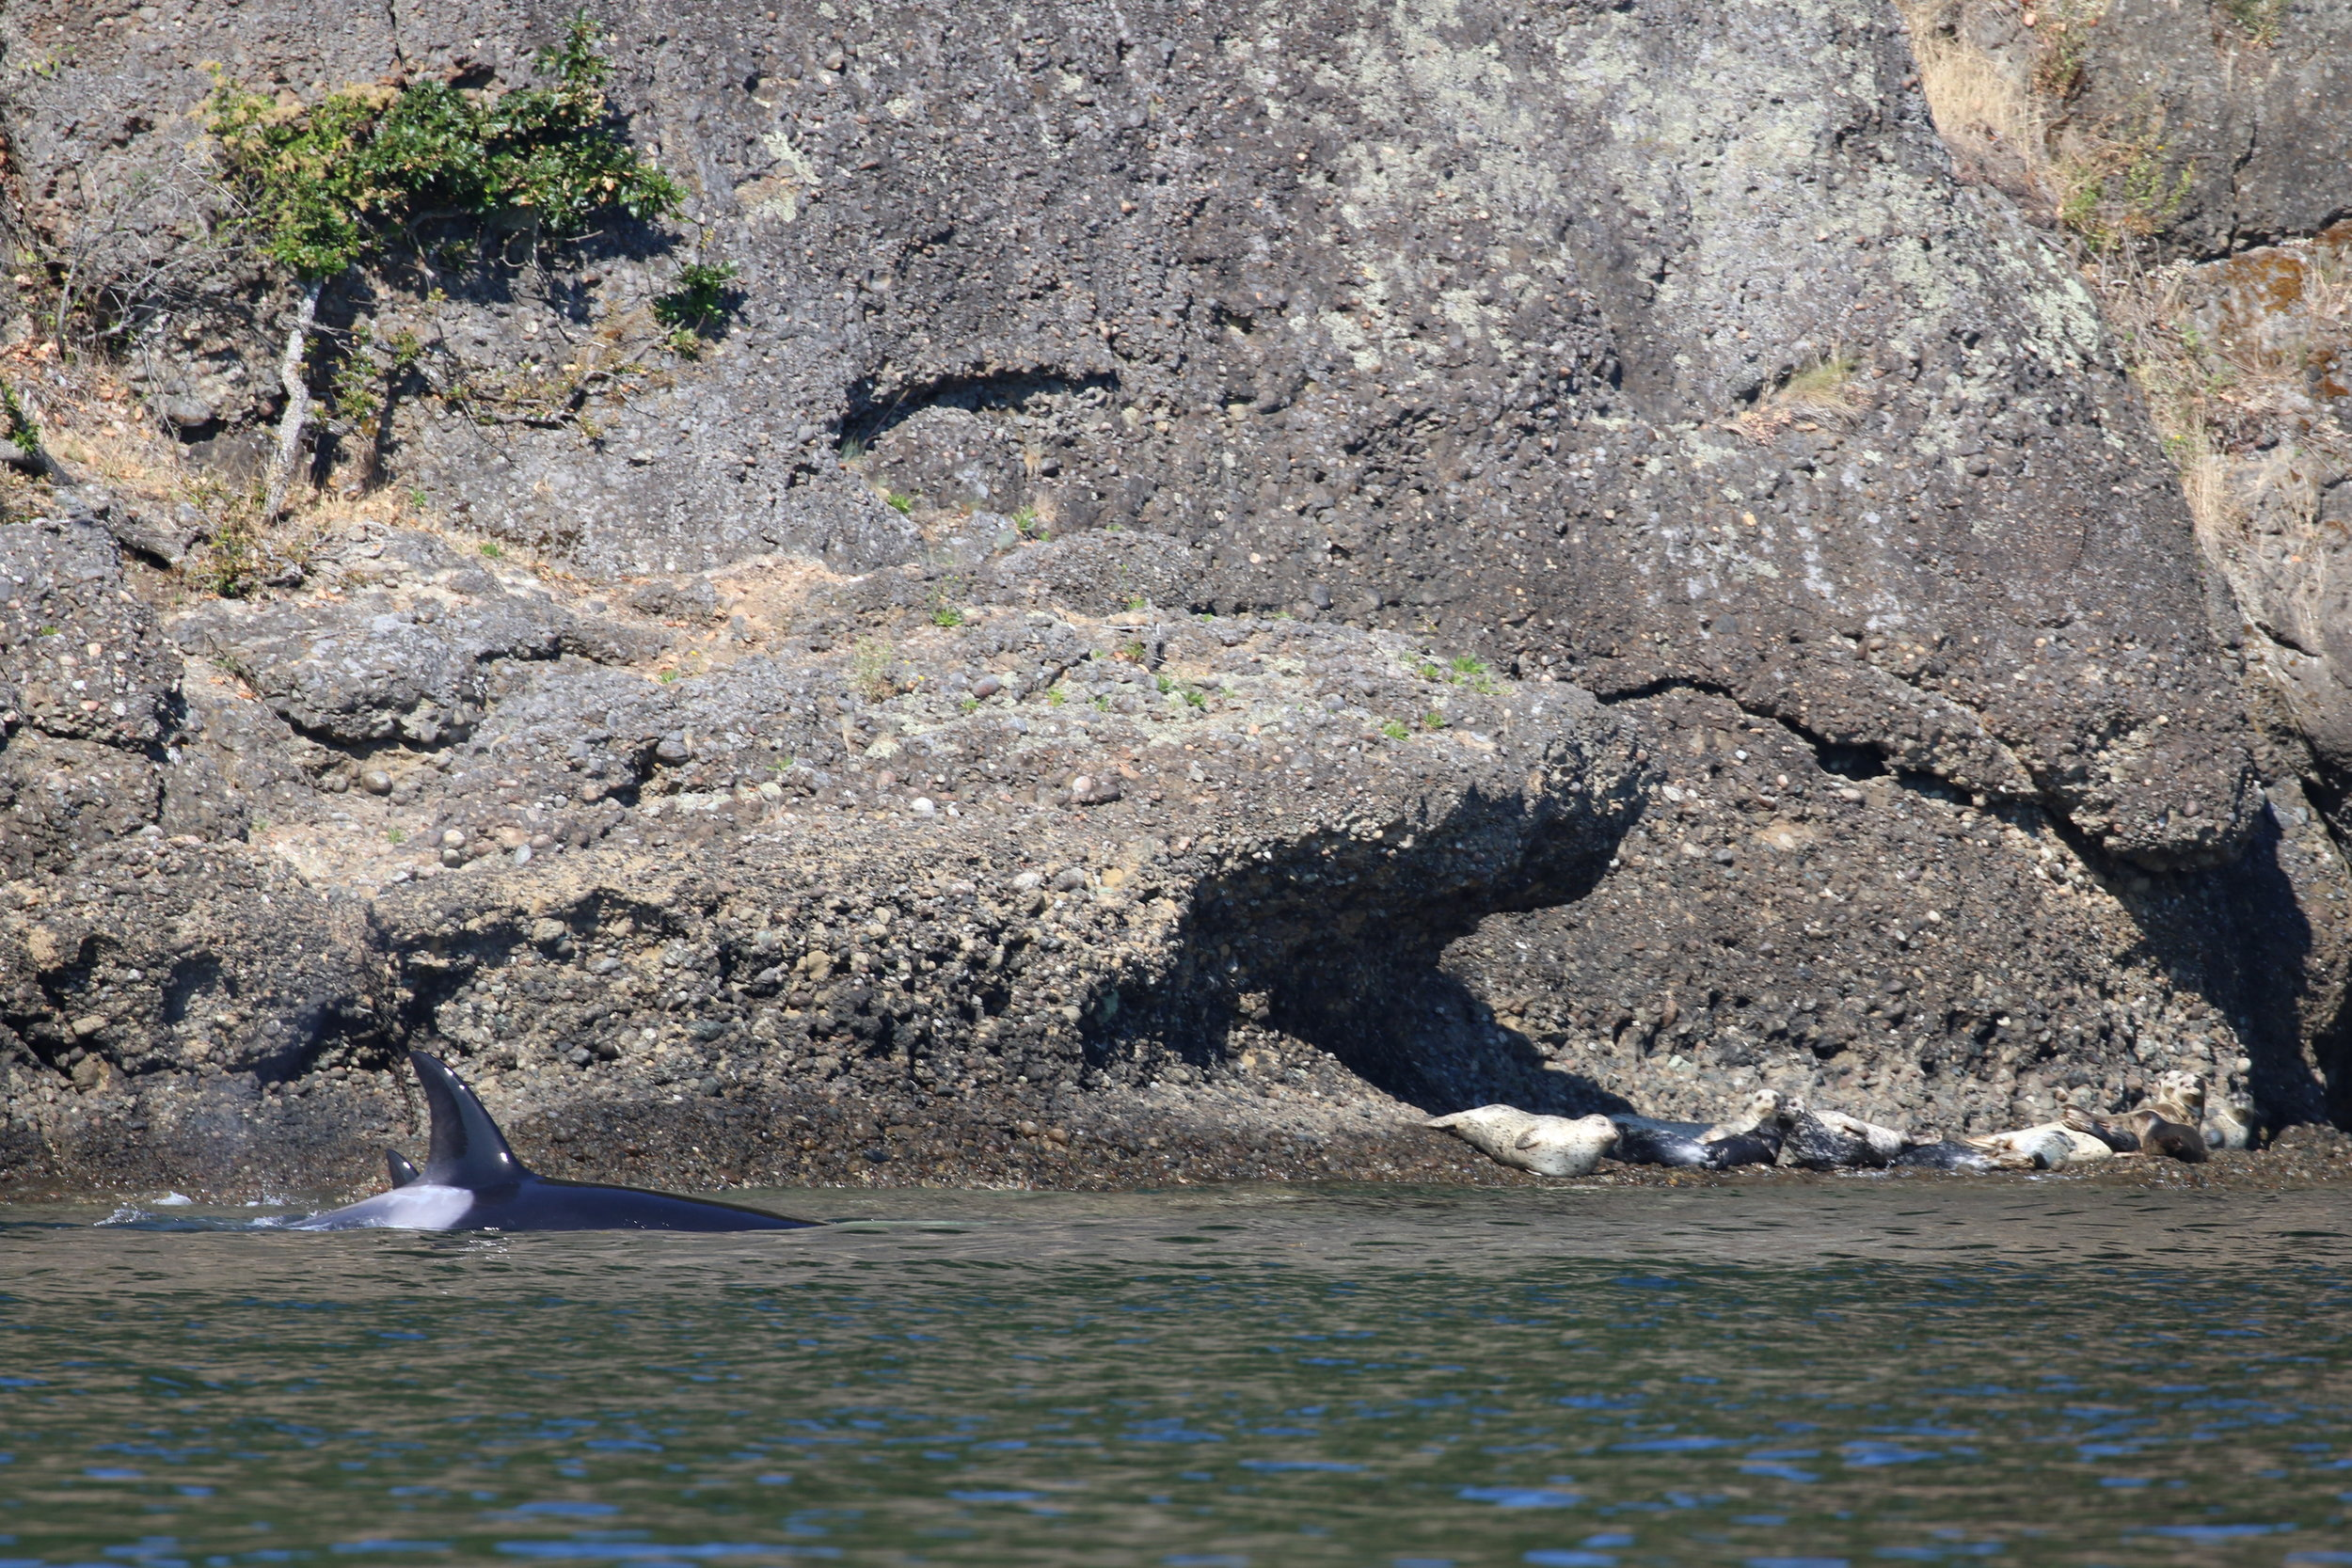 Neftali and Alcyon scaring some Harbour Seals in Active Pass. Photo by Val Watson (3.30)